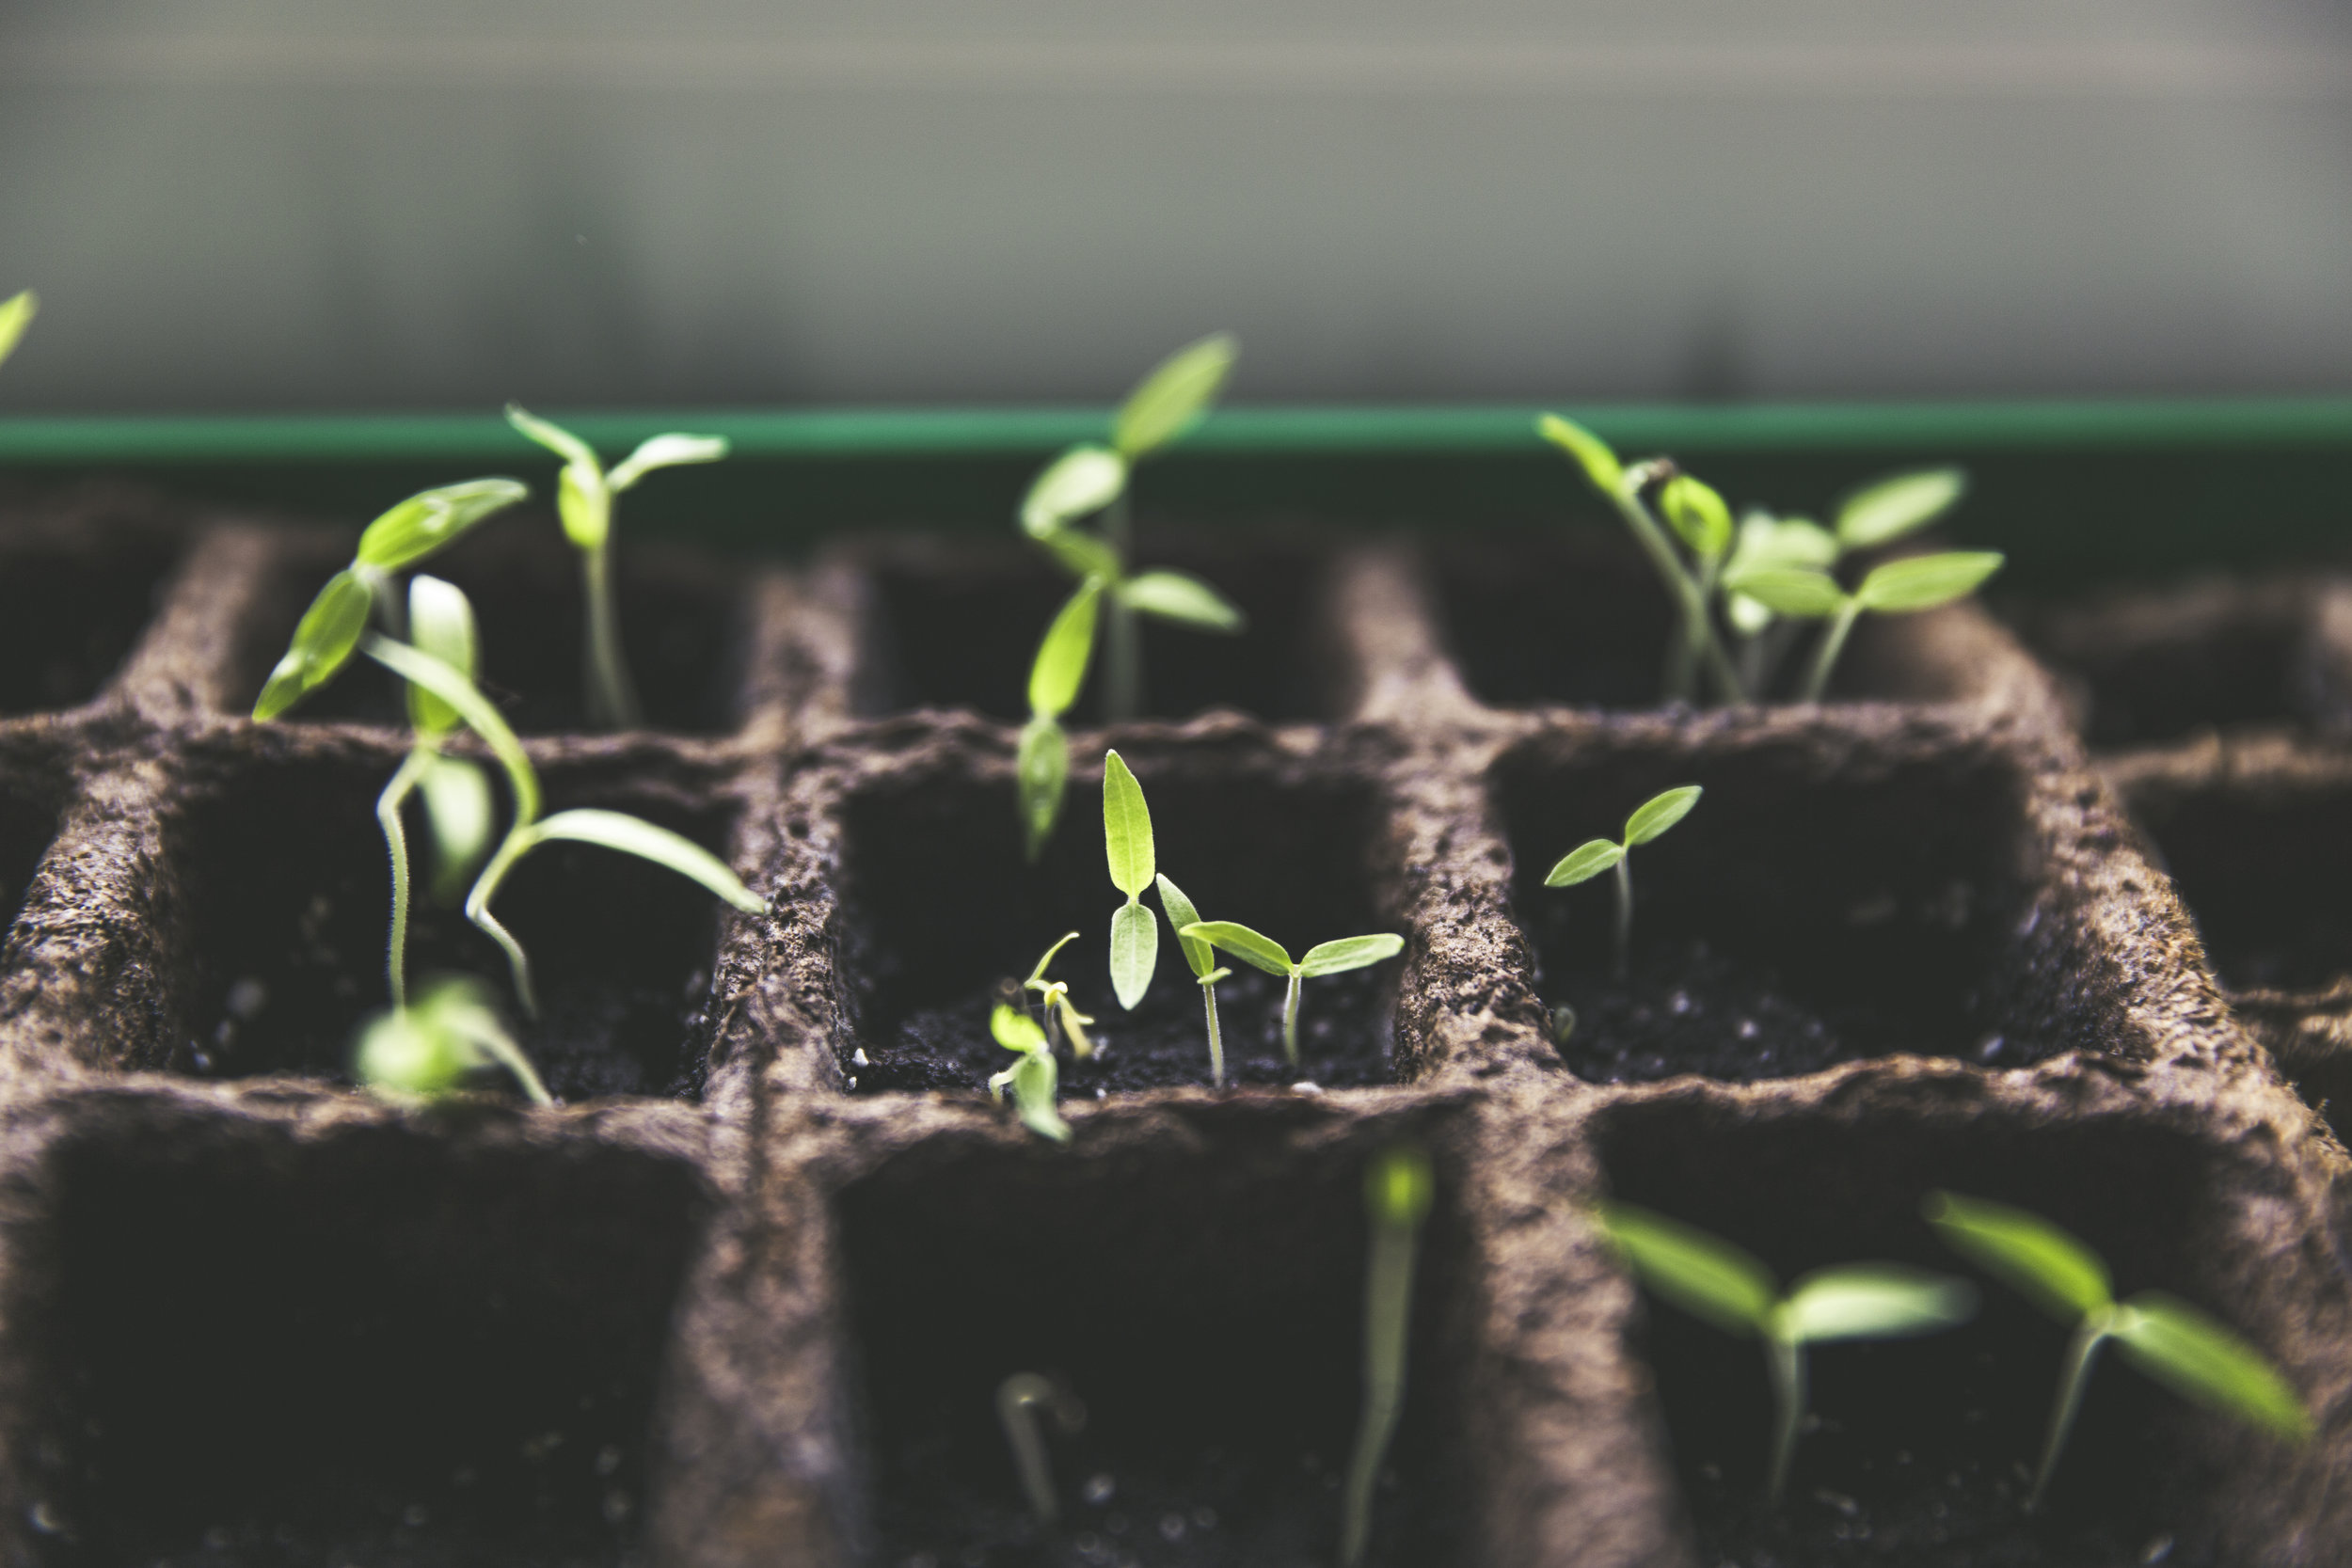 The April Shop - plant your hope with good seeds